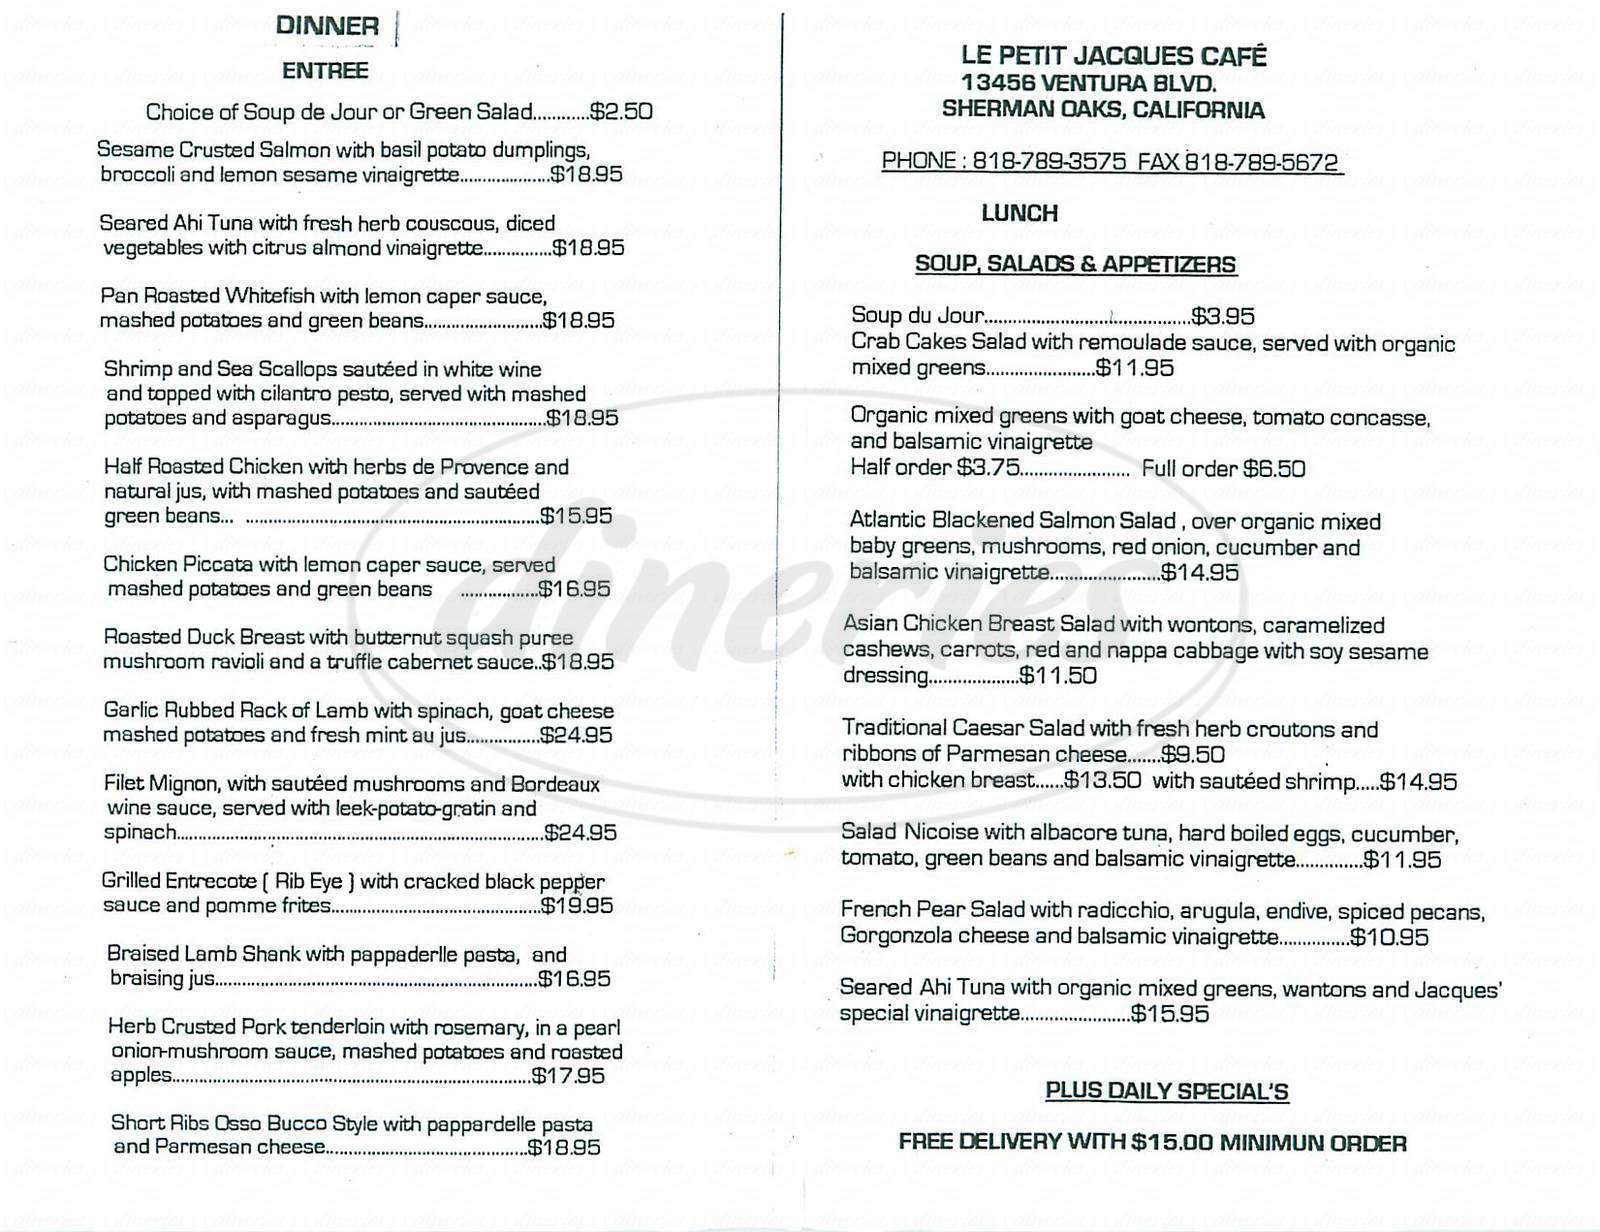 menu for Le Petit Jacques Café